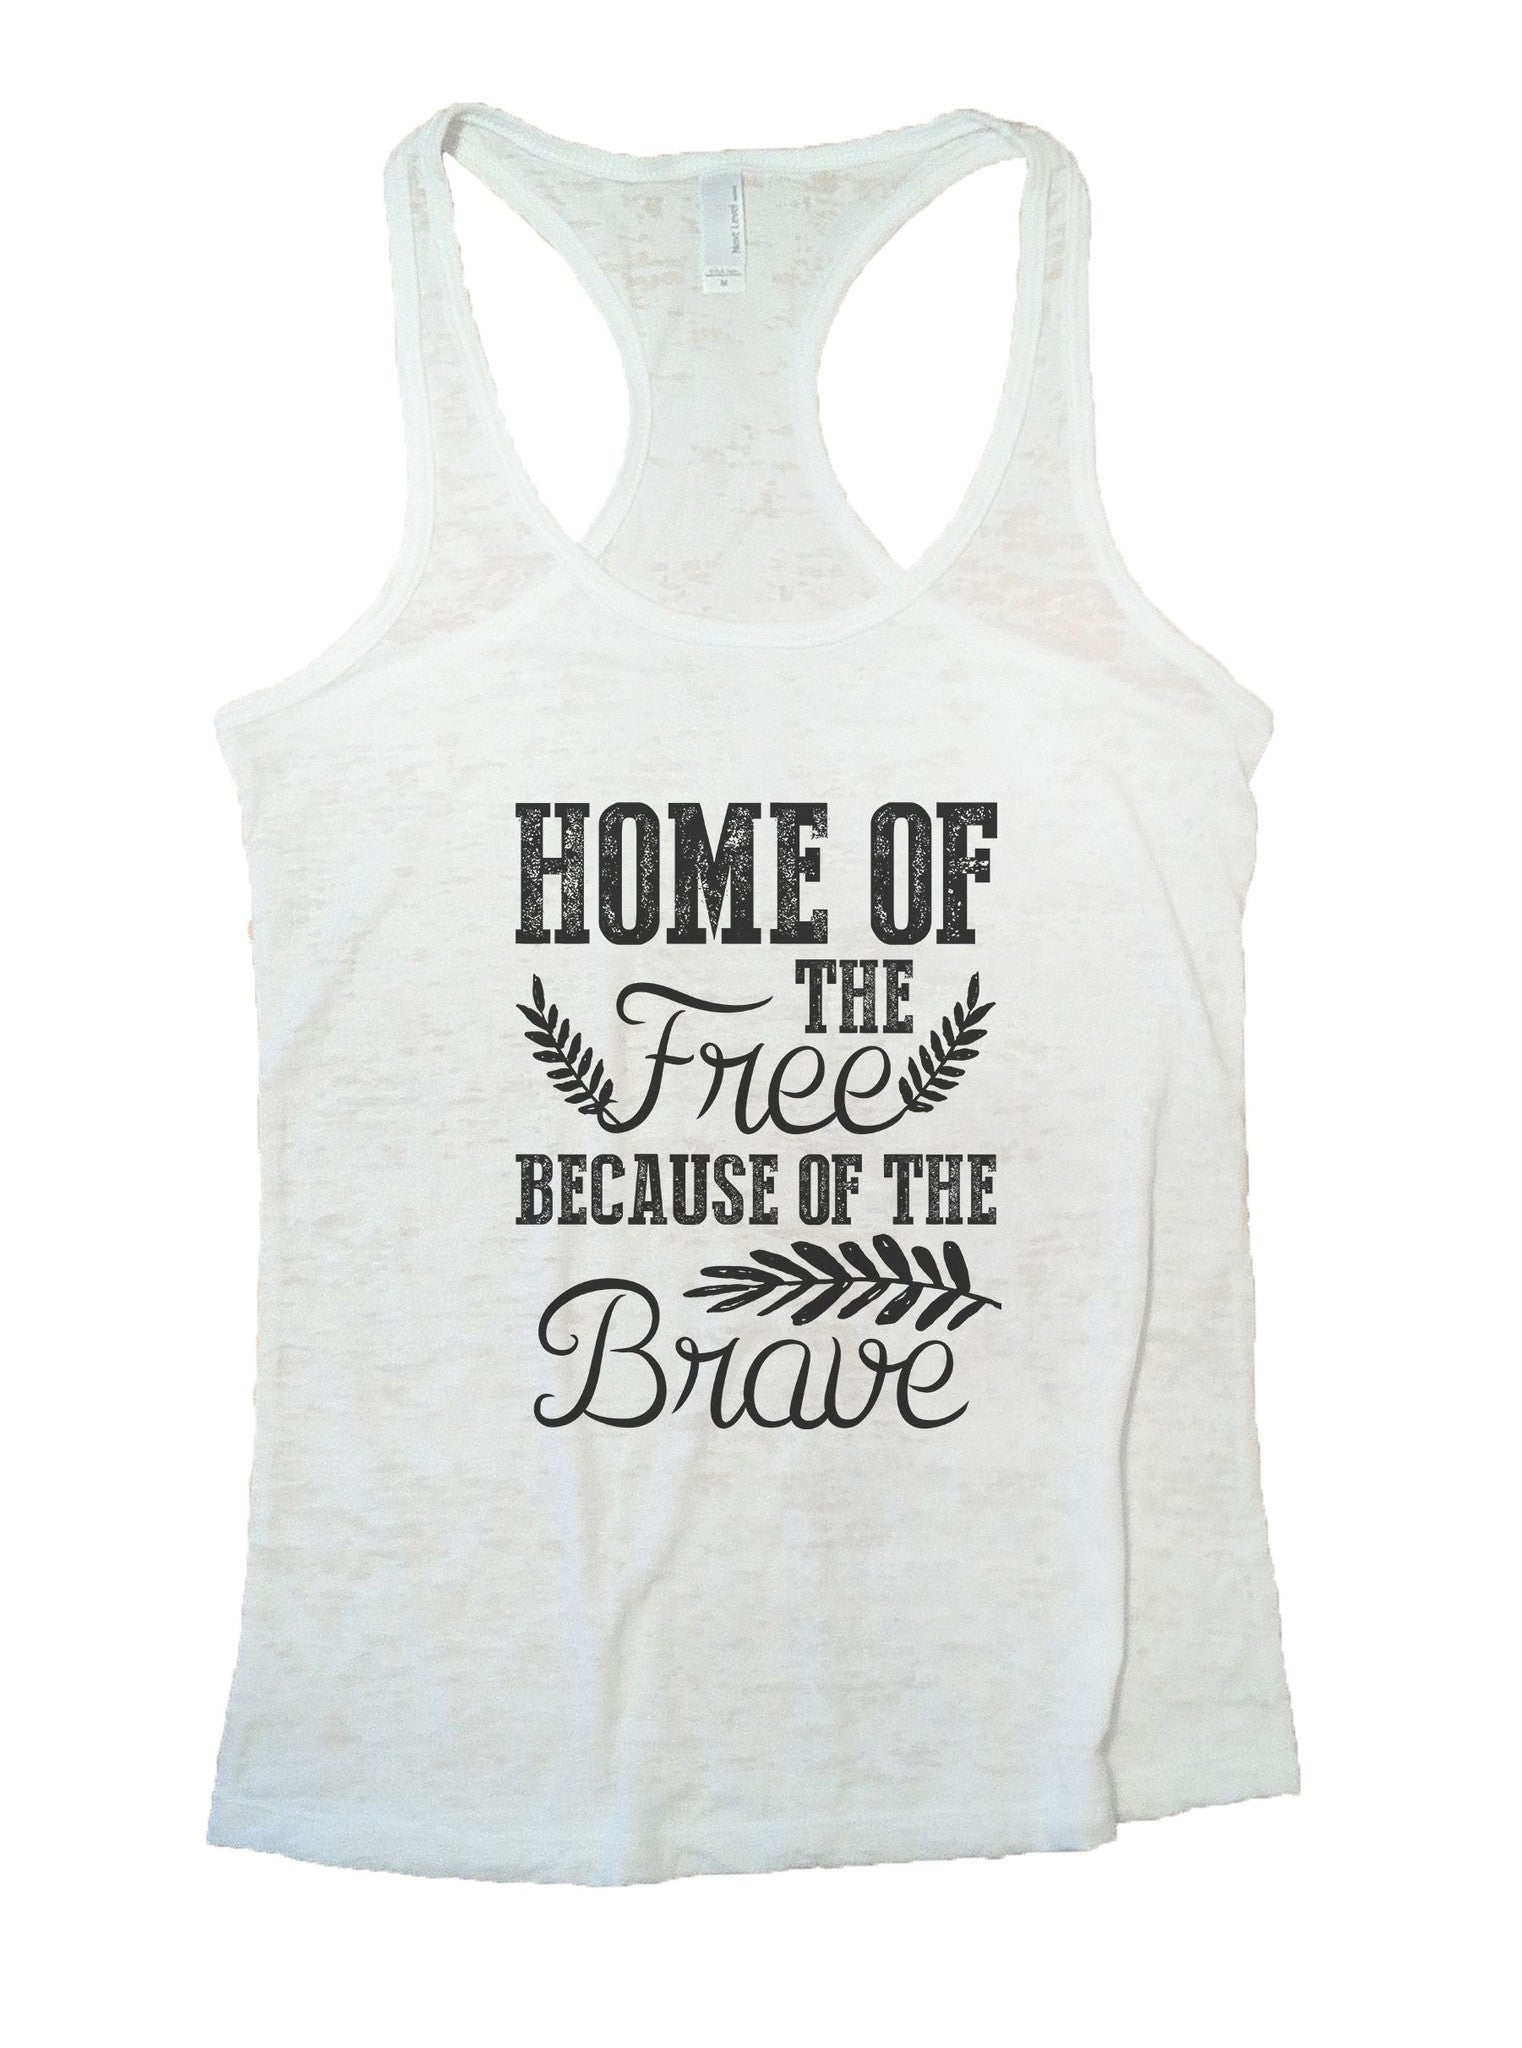 Home Of The Free Because Of The Brave Burnout Tank Top By BurnoutTankTops.com - 978 - Funny Shirts Tank Tops Burnouts and Triblends  - 6